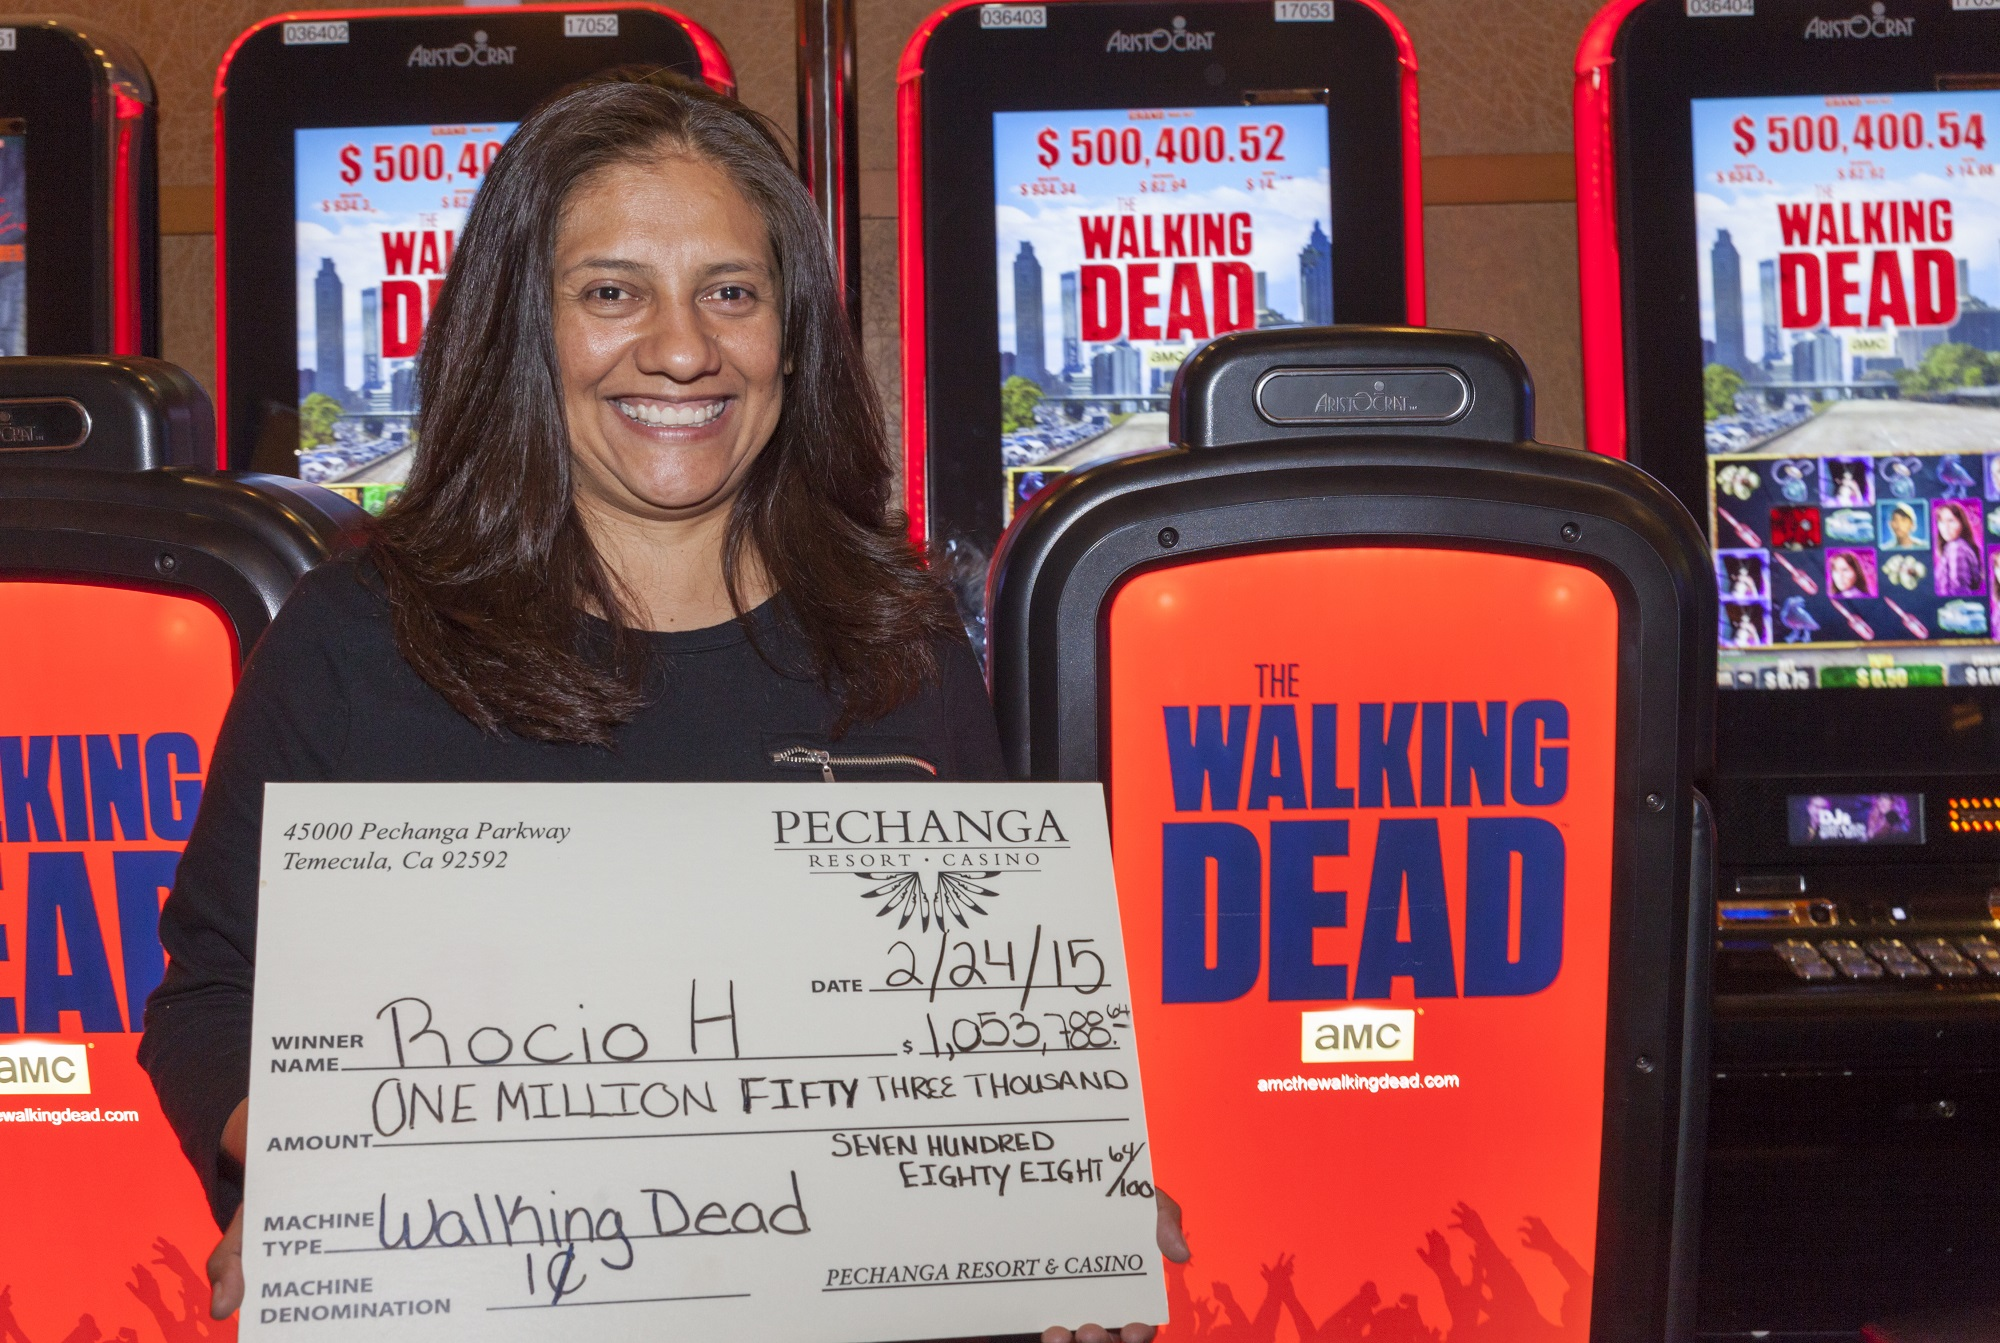 Rocio H-Walking Dead Million Dollar Winner_sm